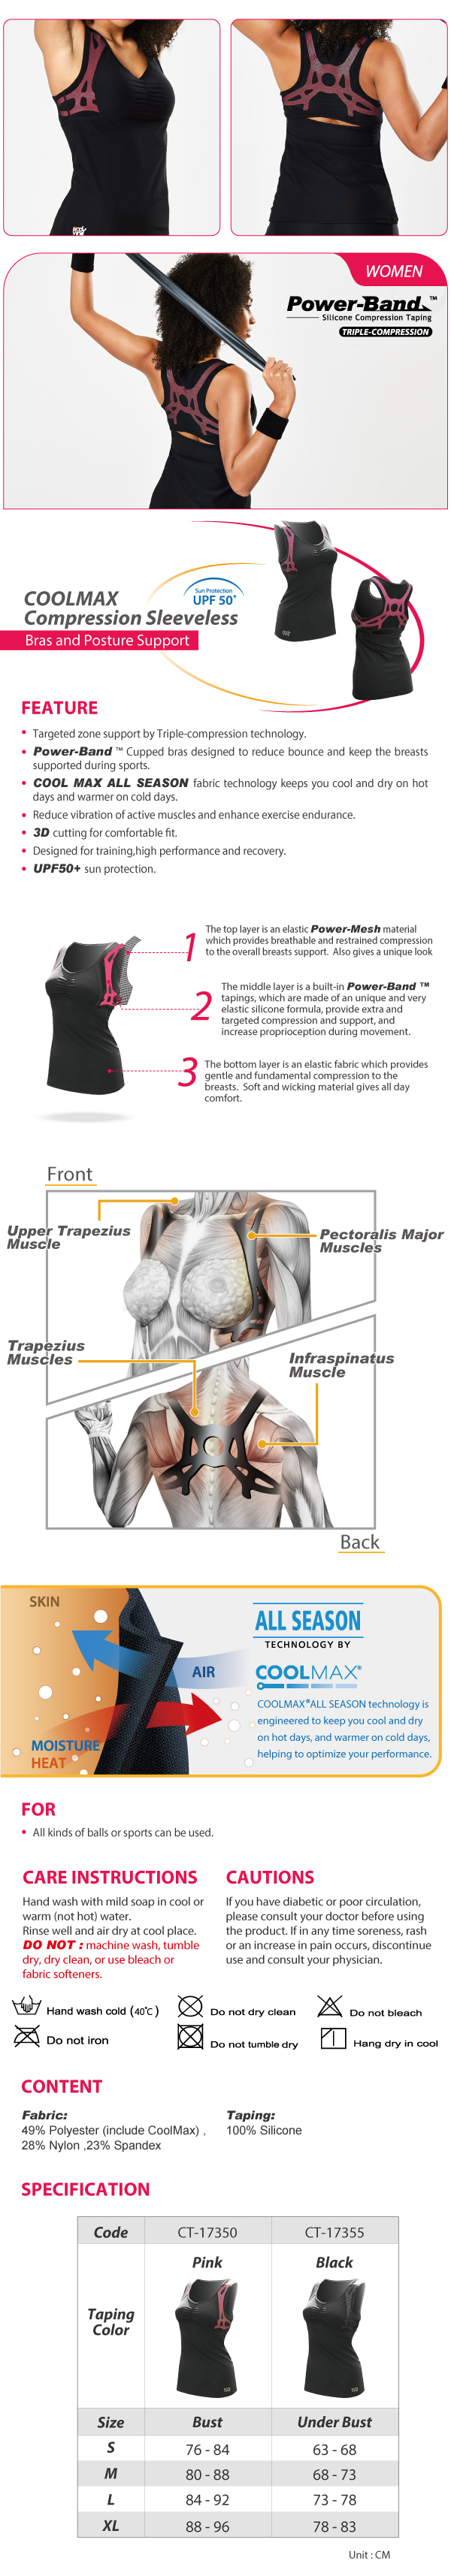 COOLMAX Compression Sleeveless-Bras and Posture Support-